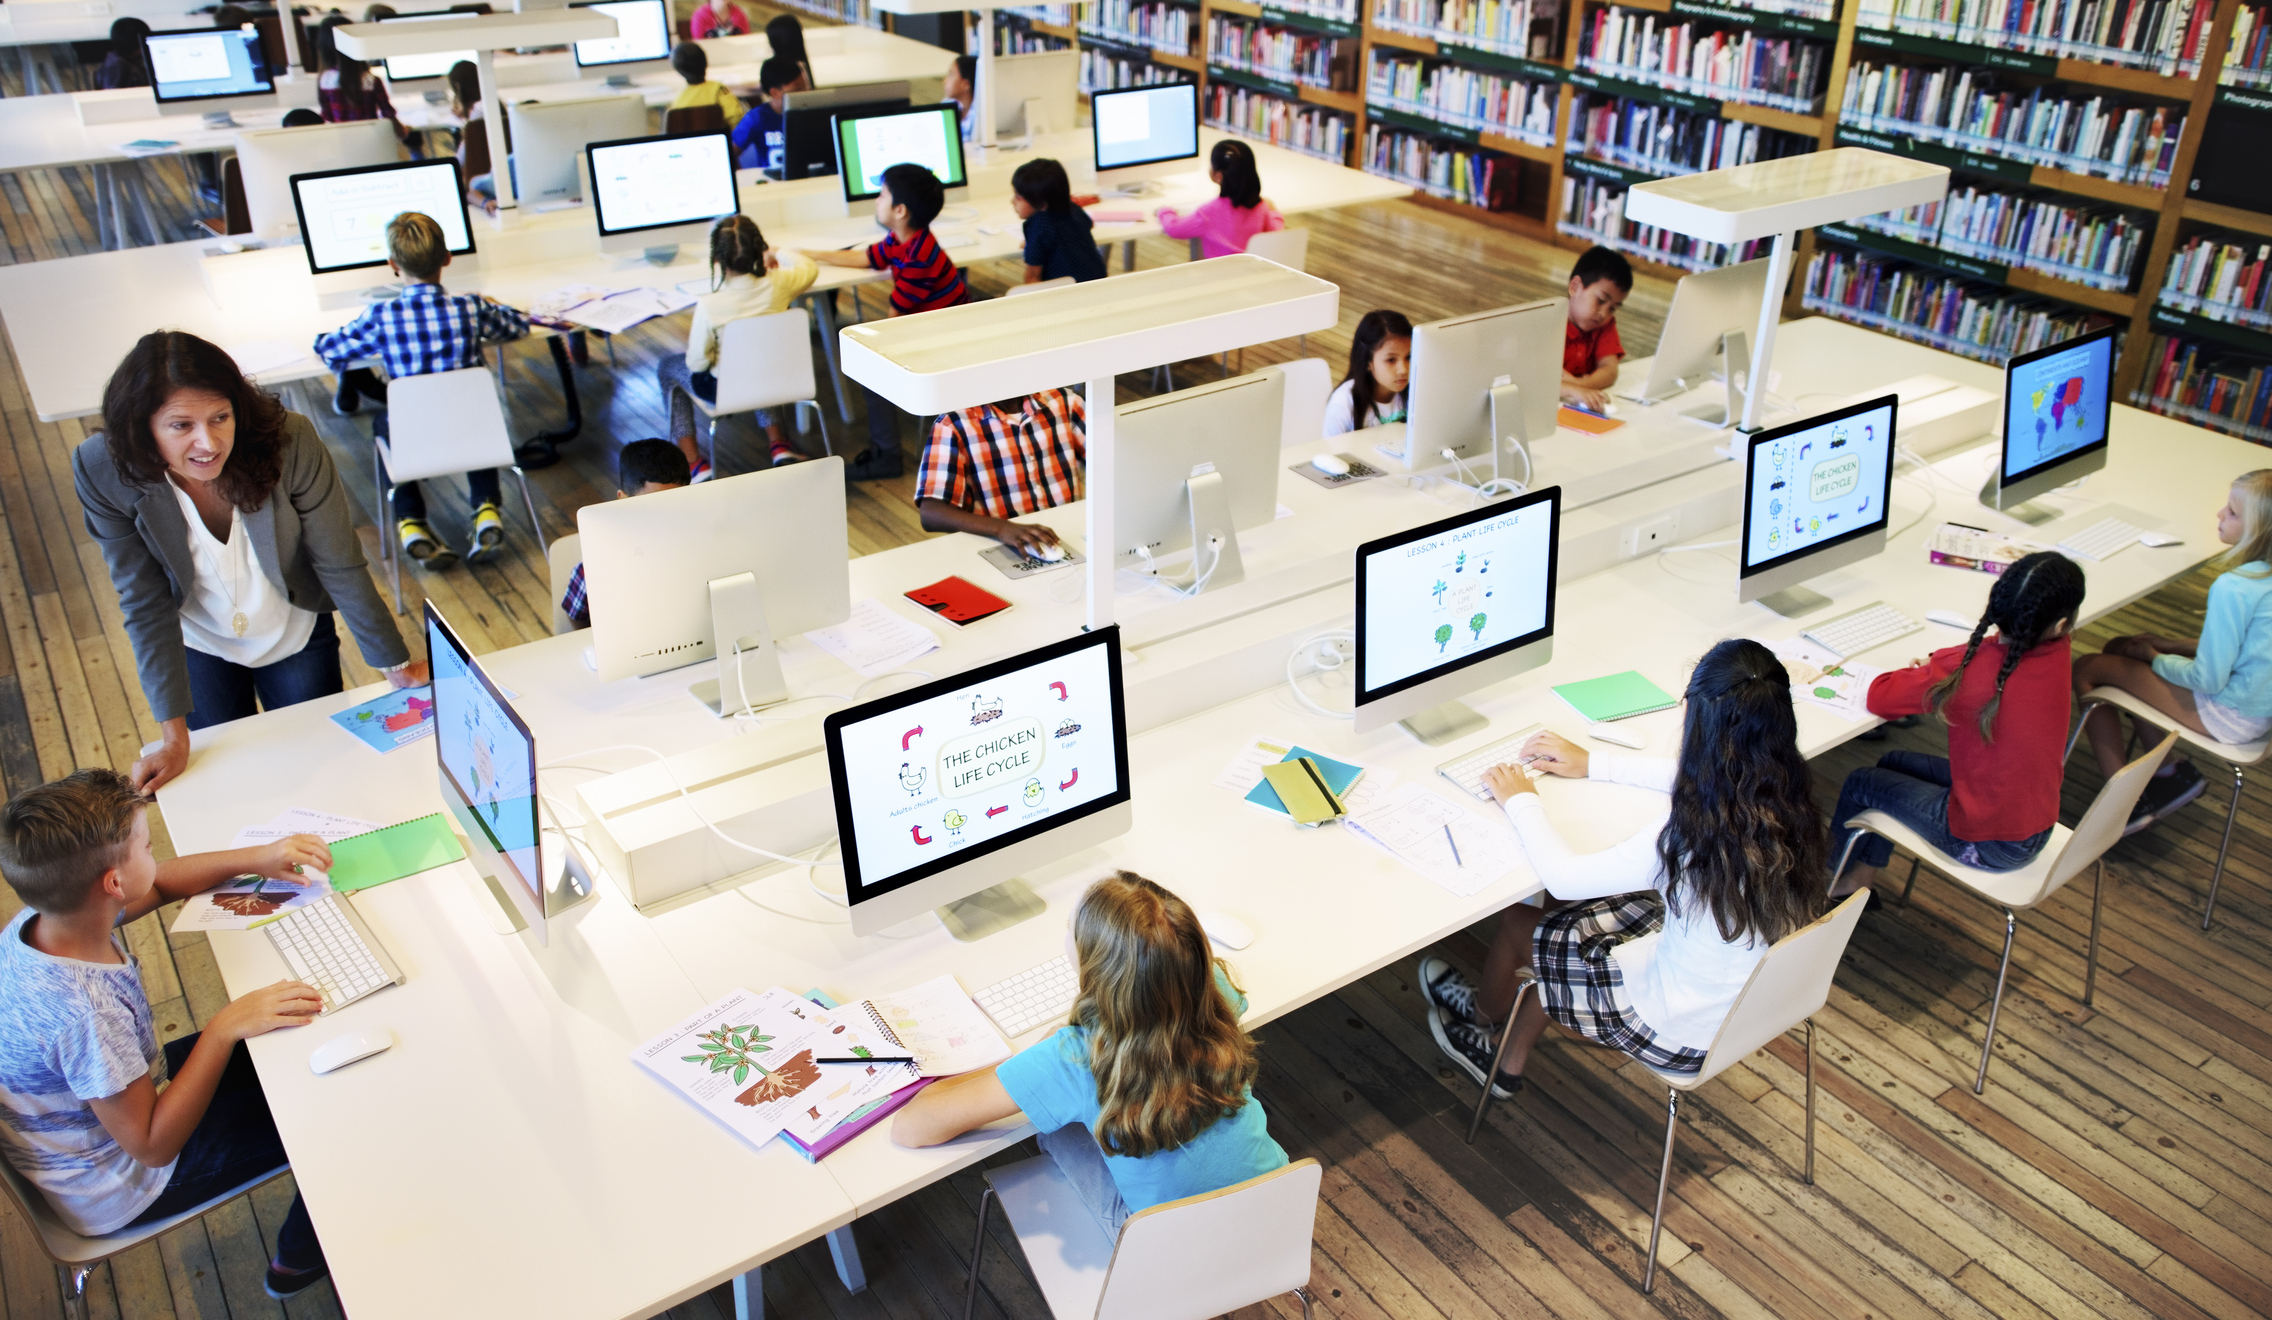 For Investors, The Future of Education Technology is now The Workplace